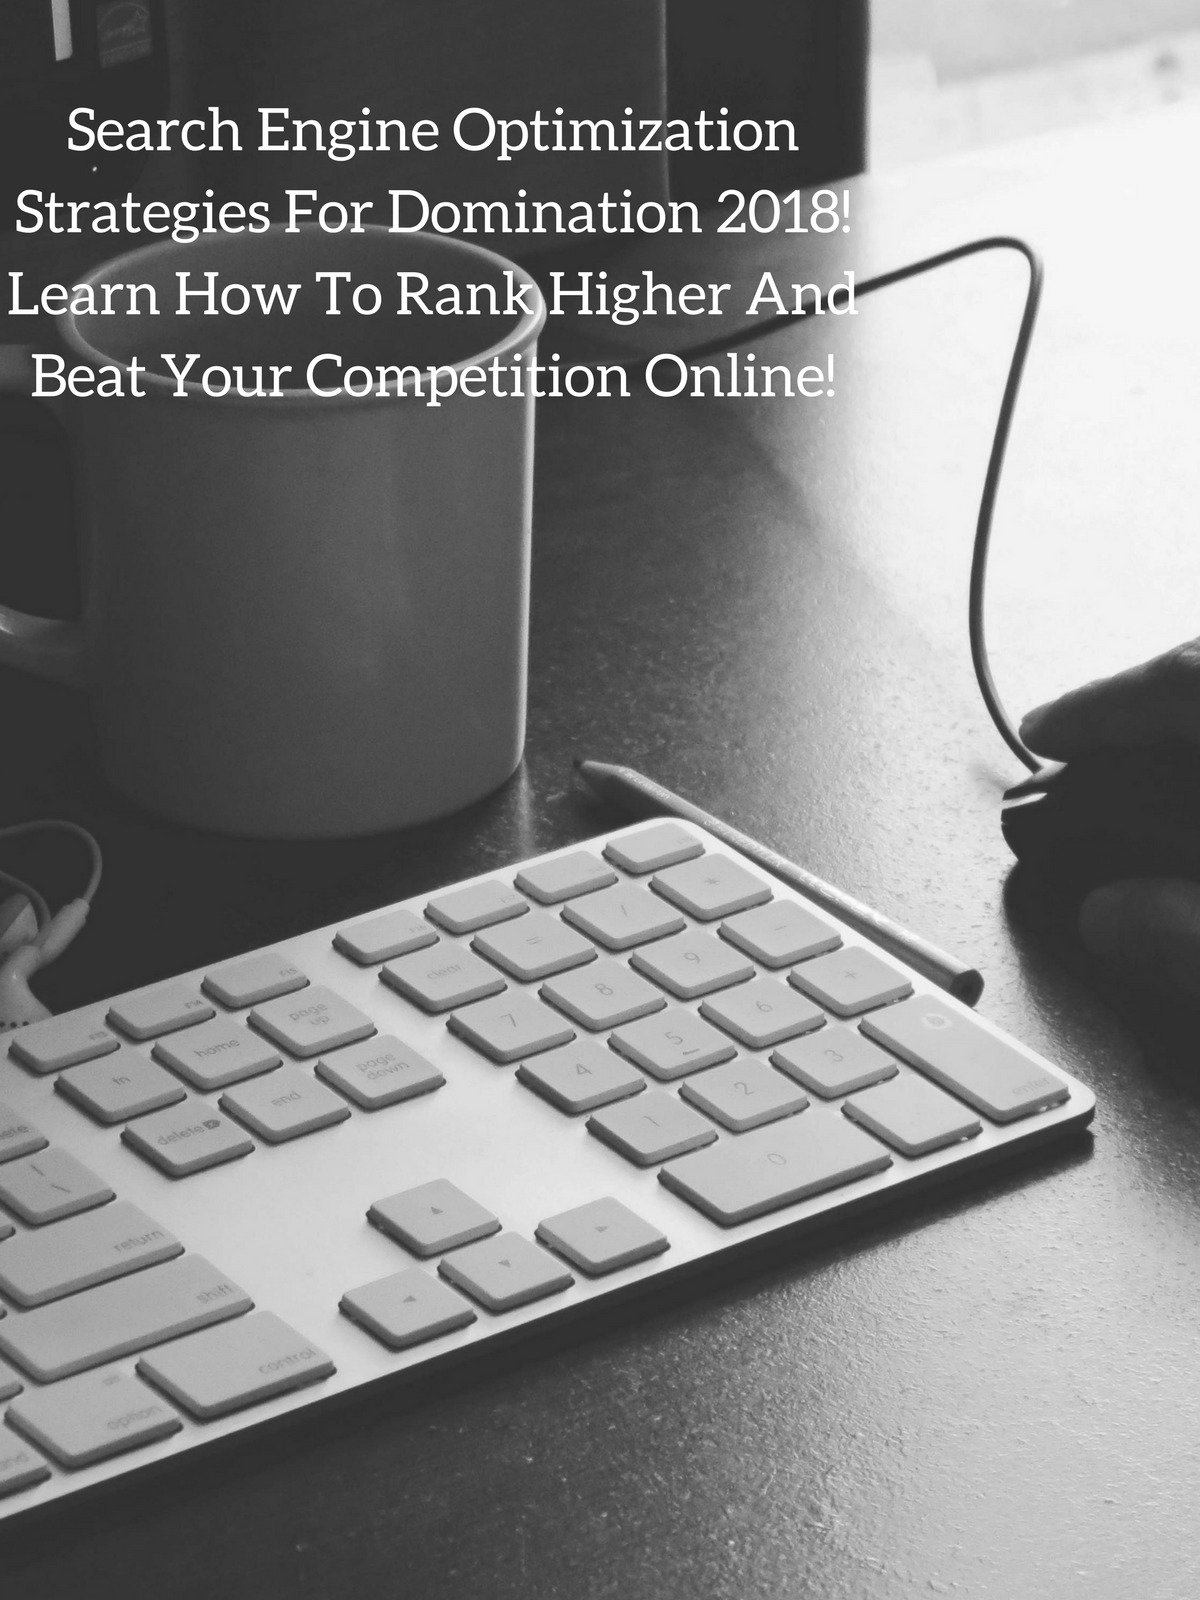 Search Engine Optimization Strategies For Dominating 2018! Learn How To Rank Higher And Beat Your Competition Online! on Amazon Prime Instant Video UK